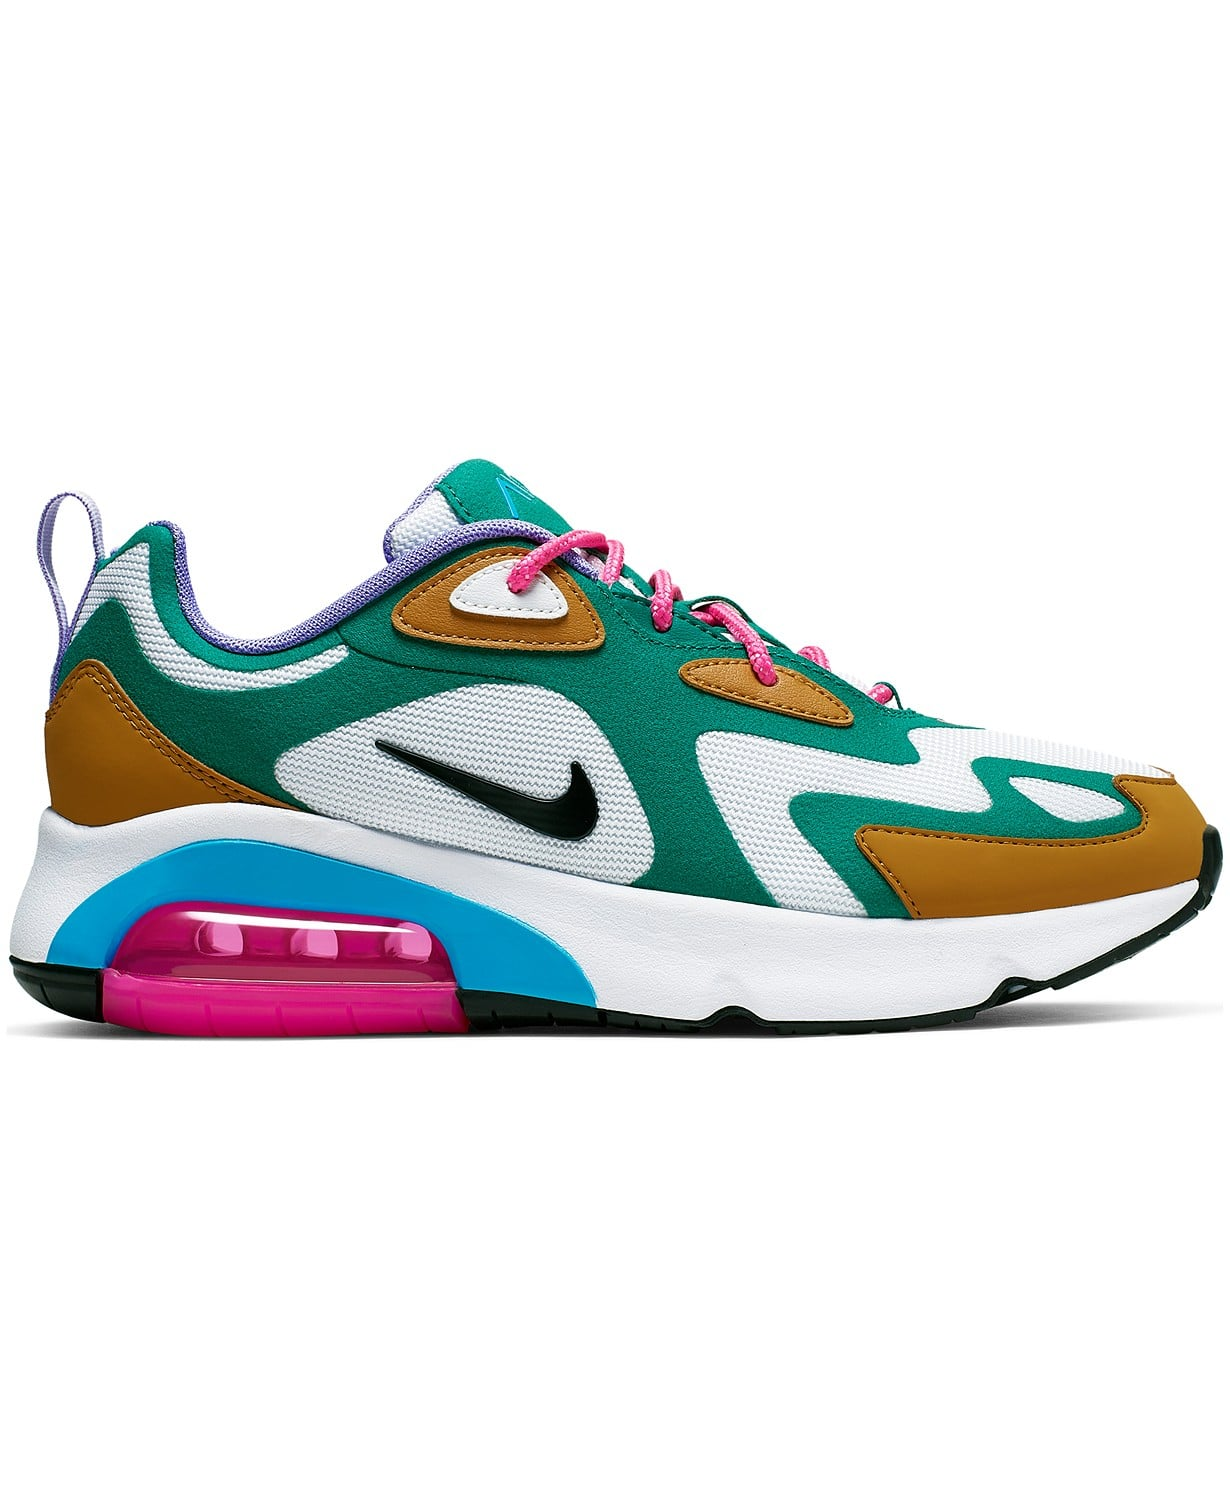 condado Escabullirse Teórico  Nike Air Max 200 Sneakers | Macy's Has 7,000+ Shoes Online, but We ...